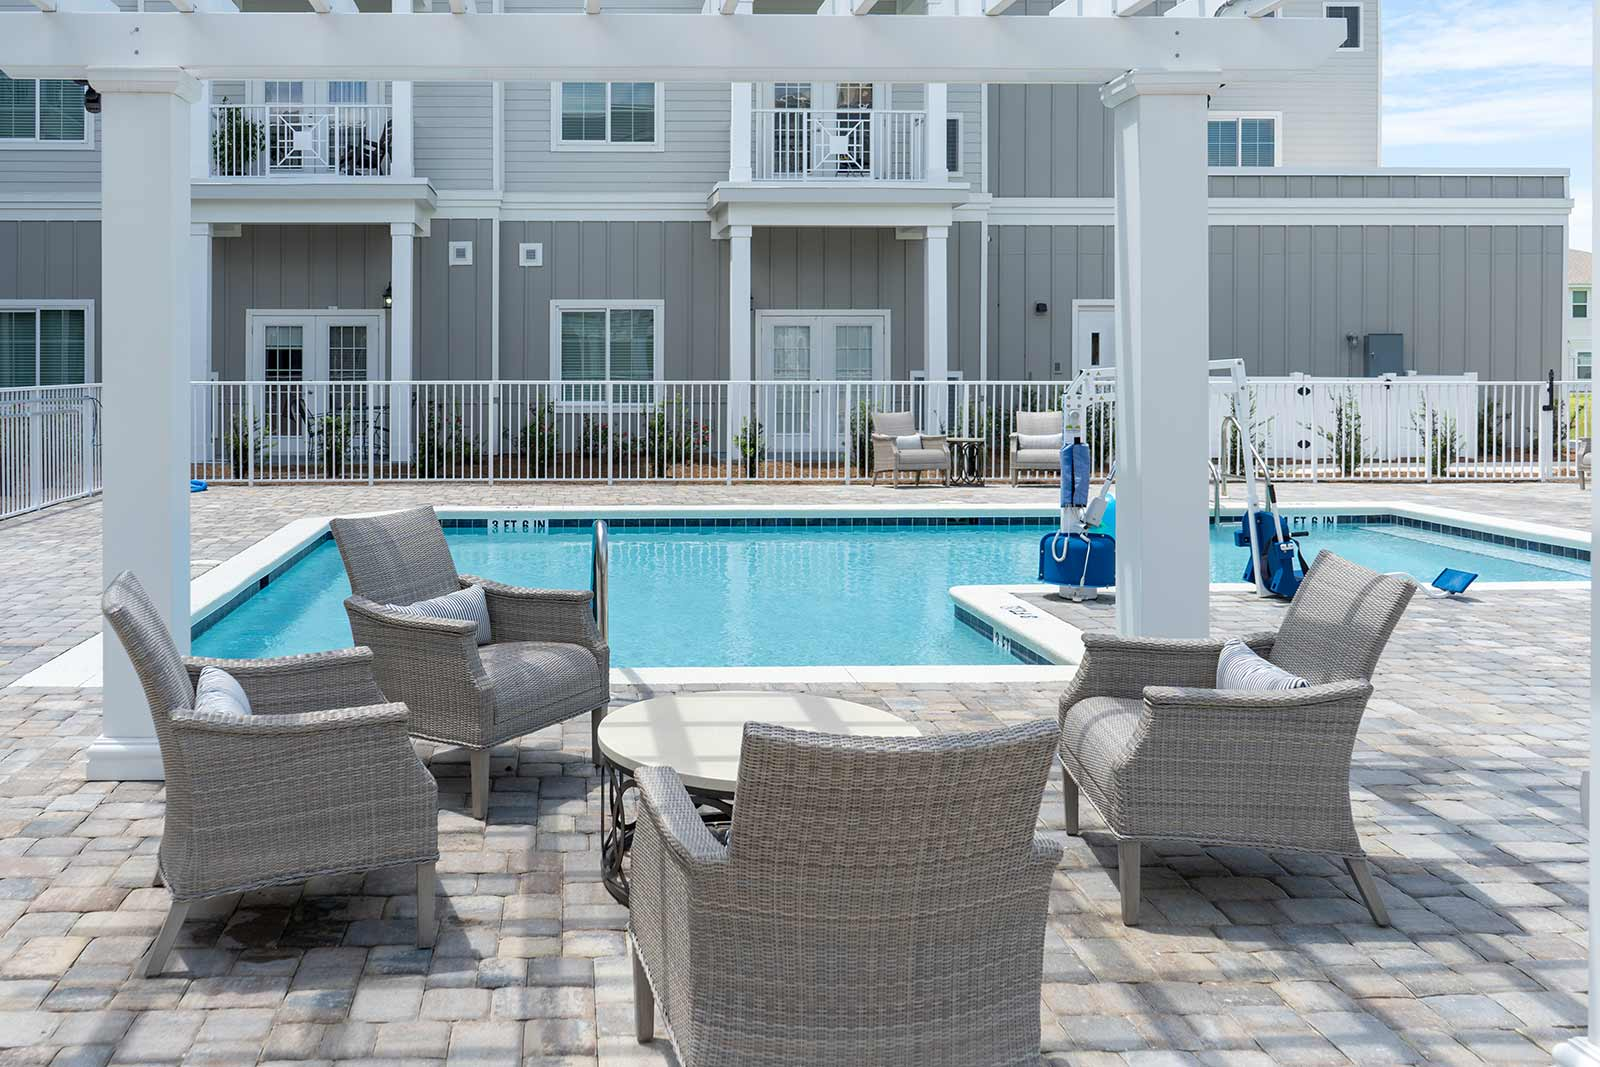 Patio Seating Under Pergola With Swimming Pool In Background At Seagrass Village Of Panama City Beach